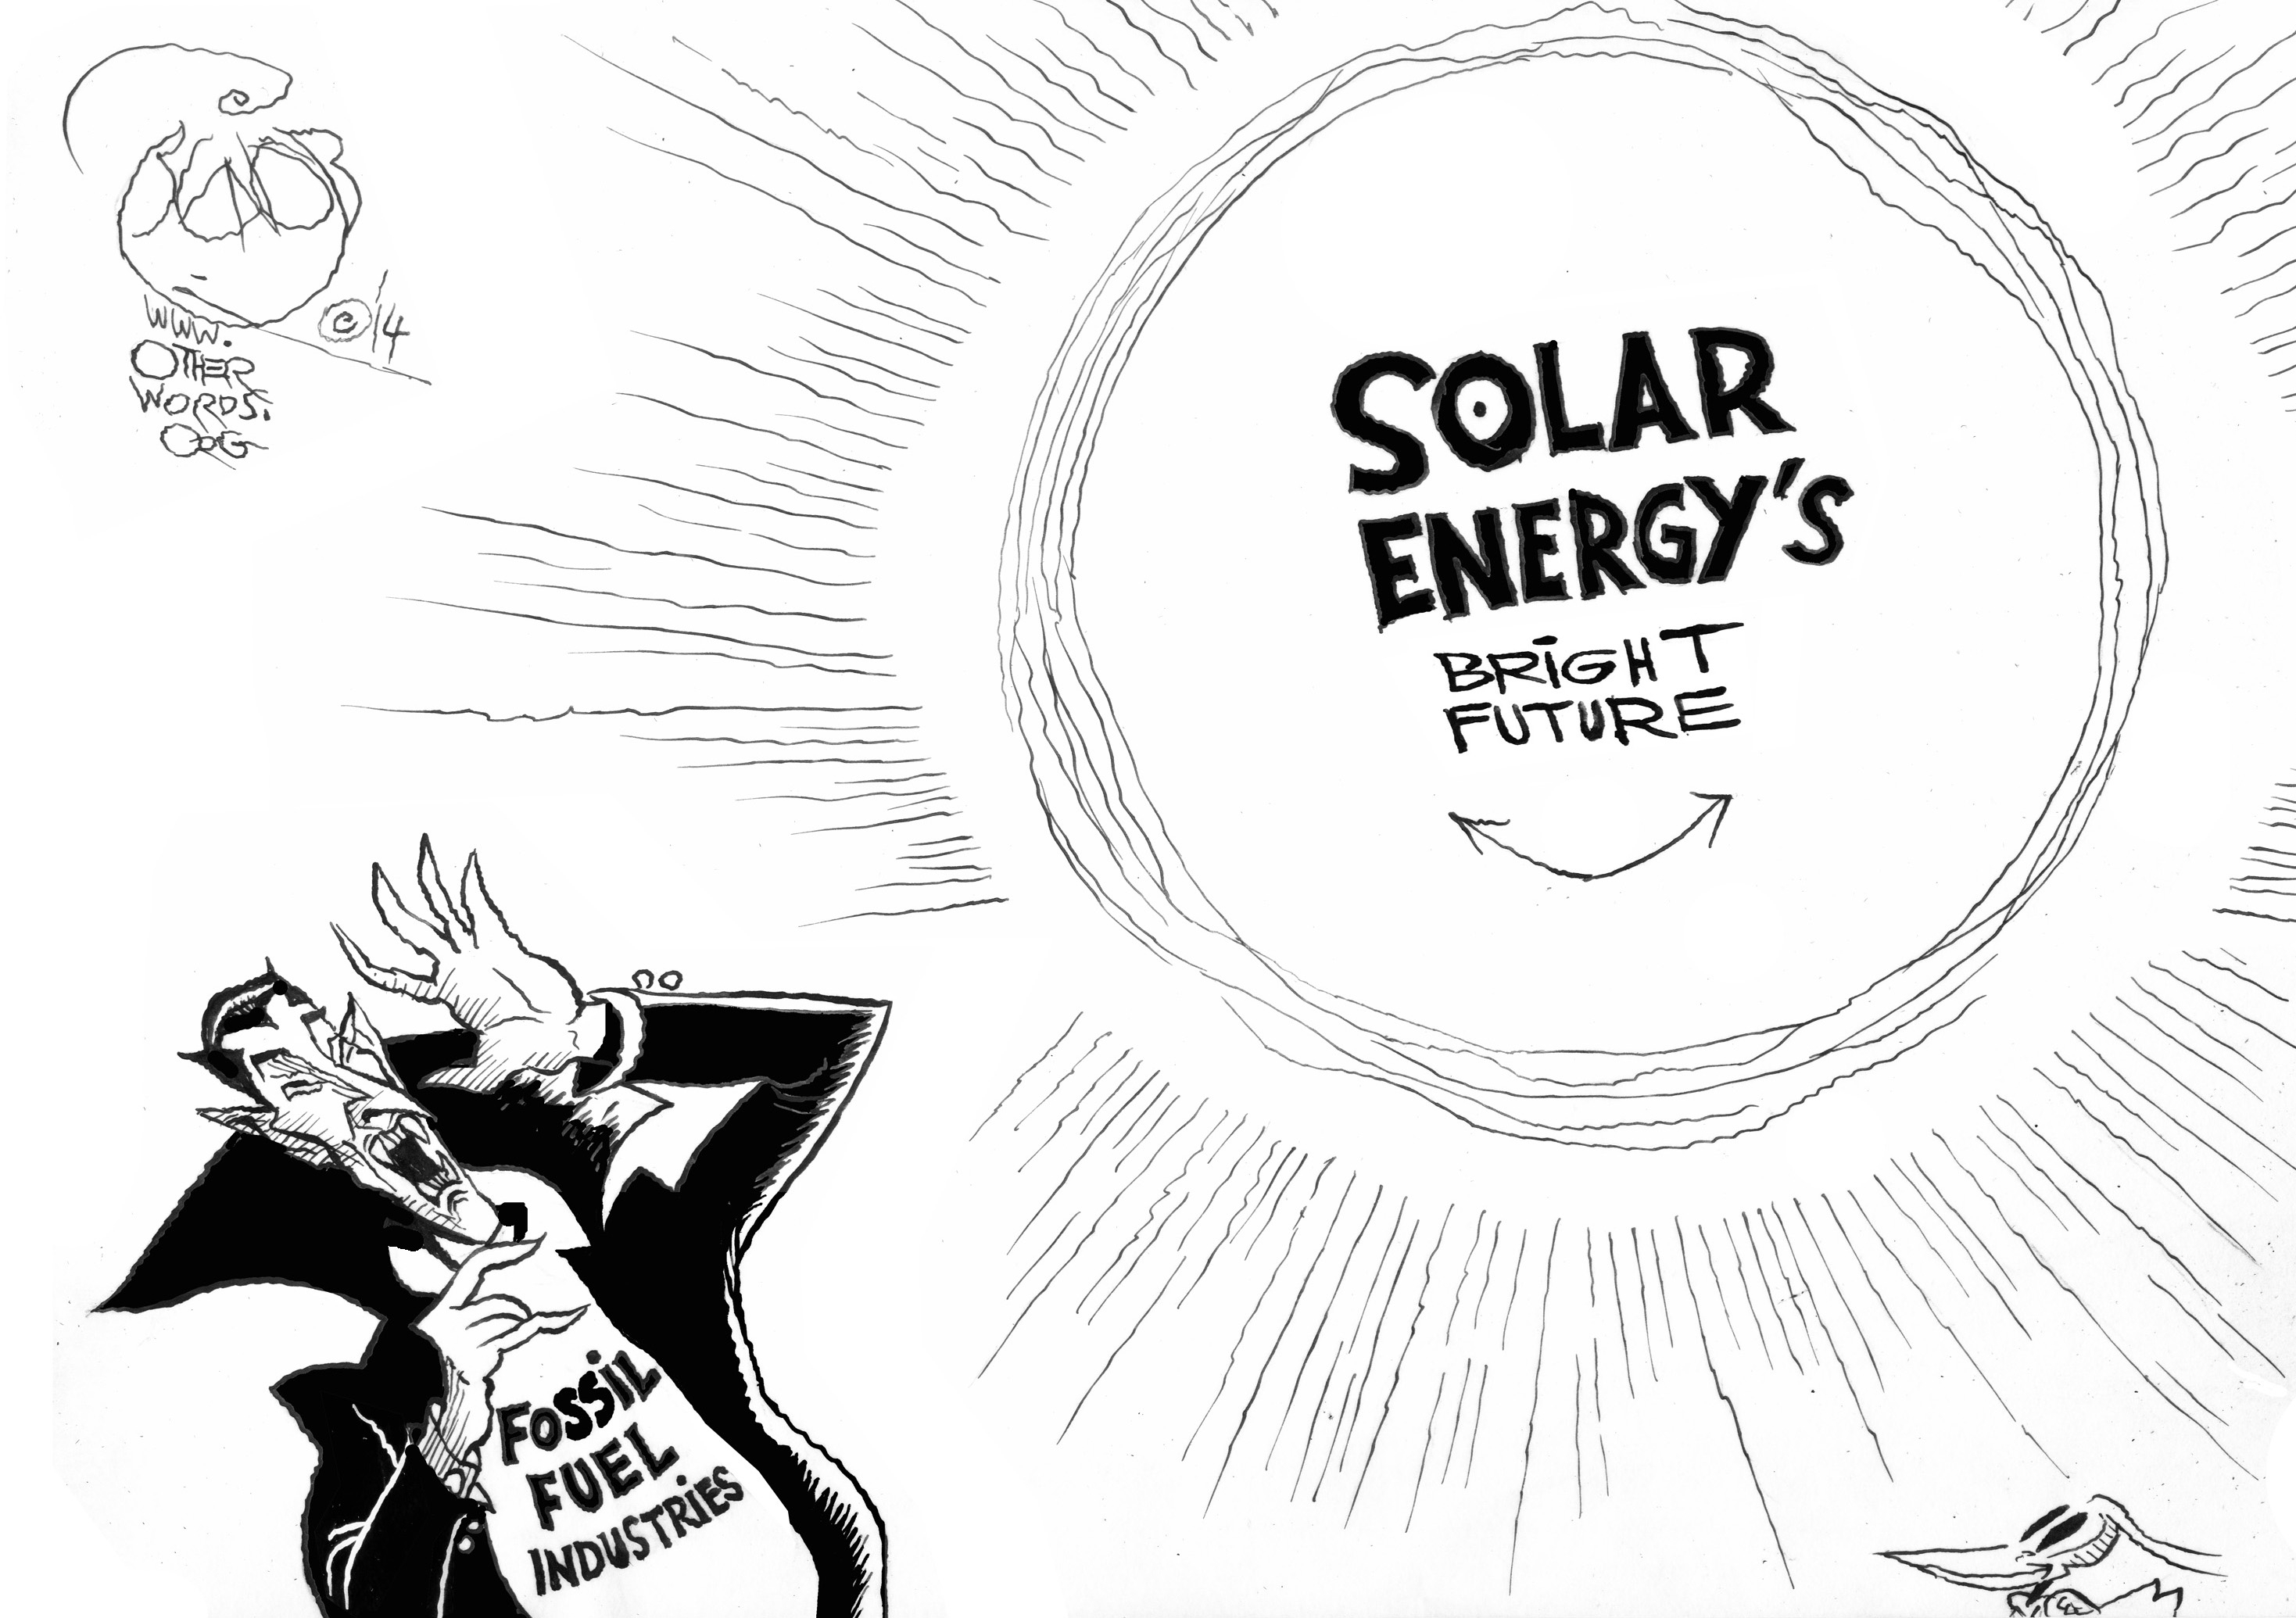 Solar Power Gets Hot Hot Hot